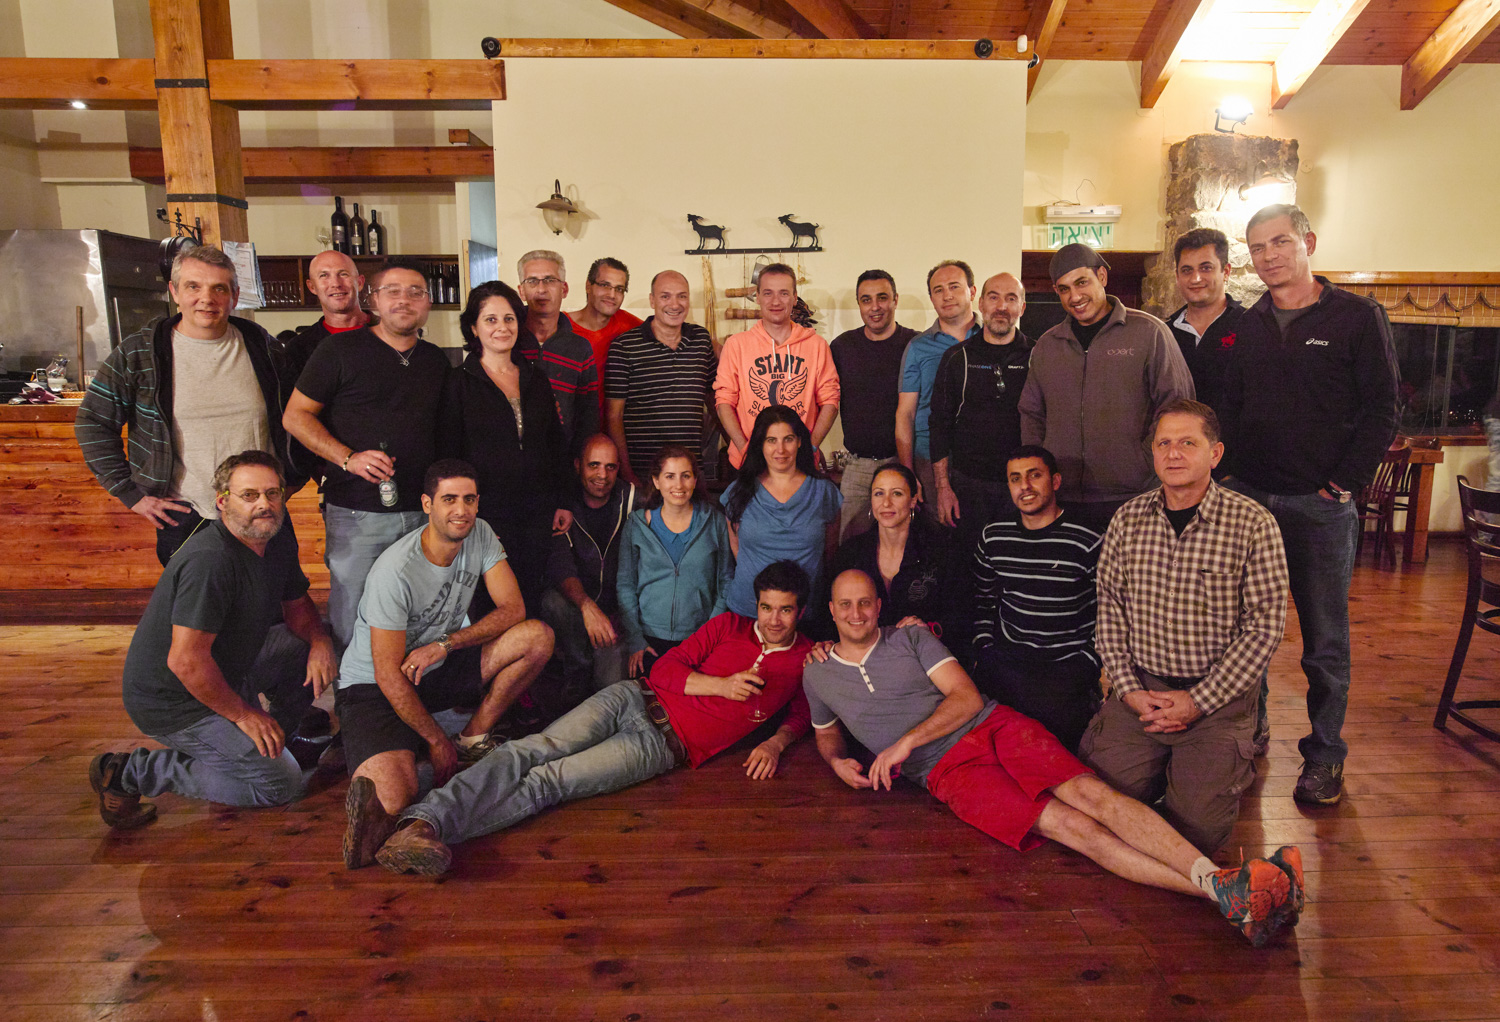 Group - Kfar Charuv, November 2015